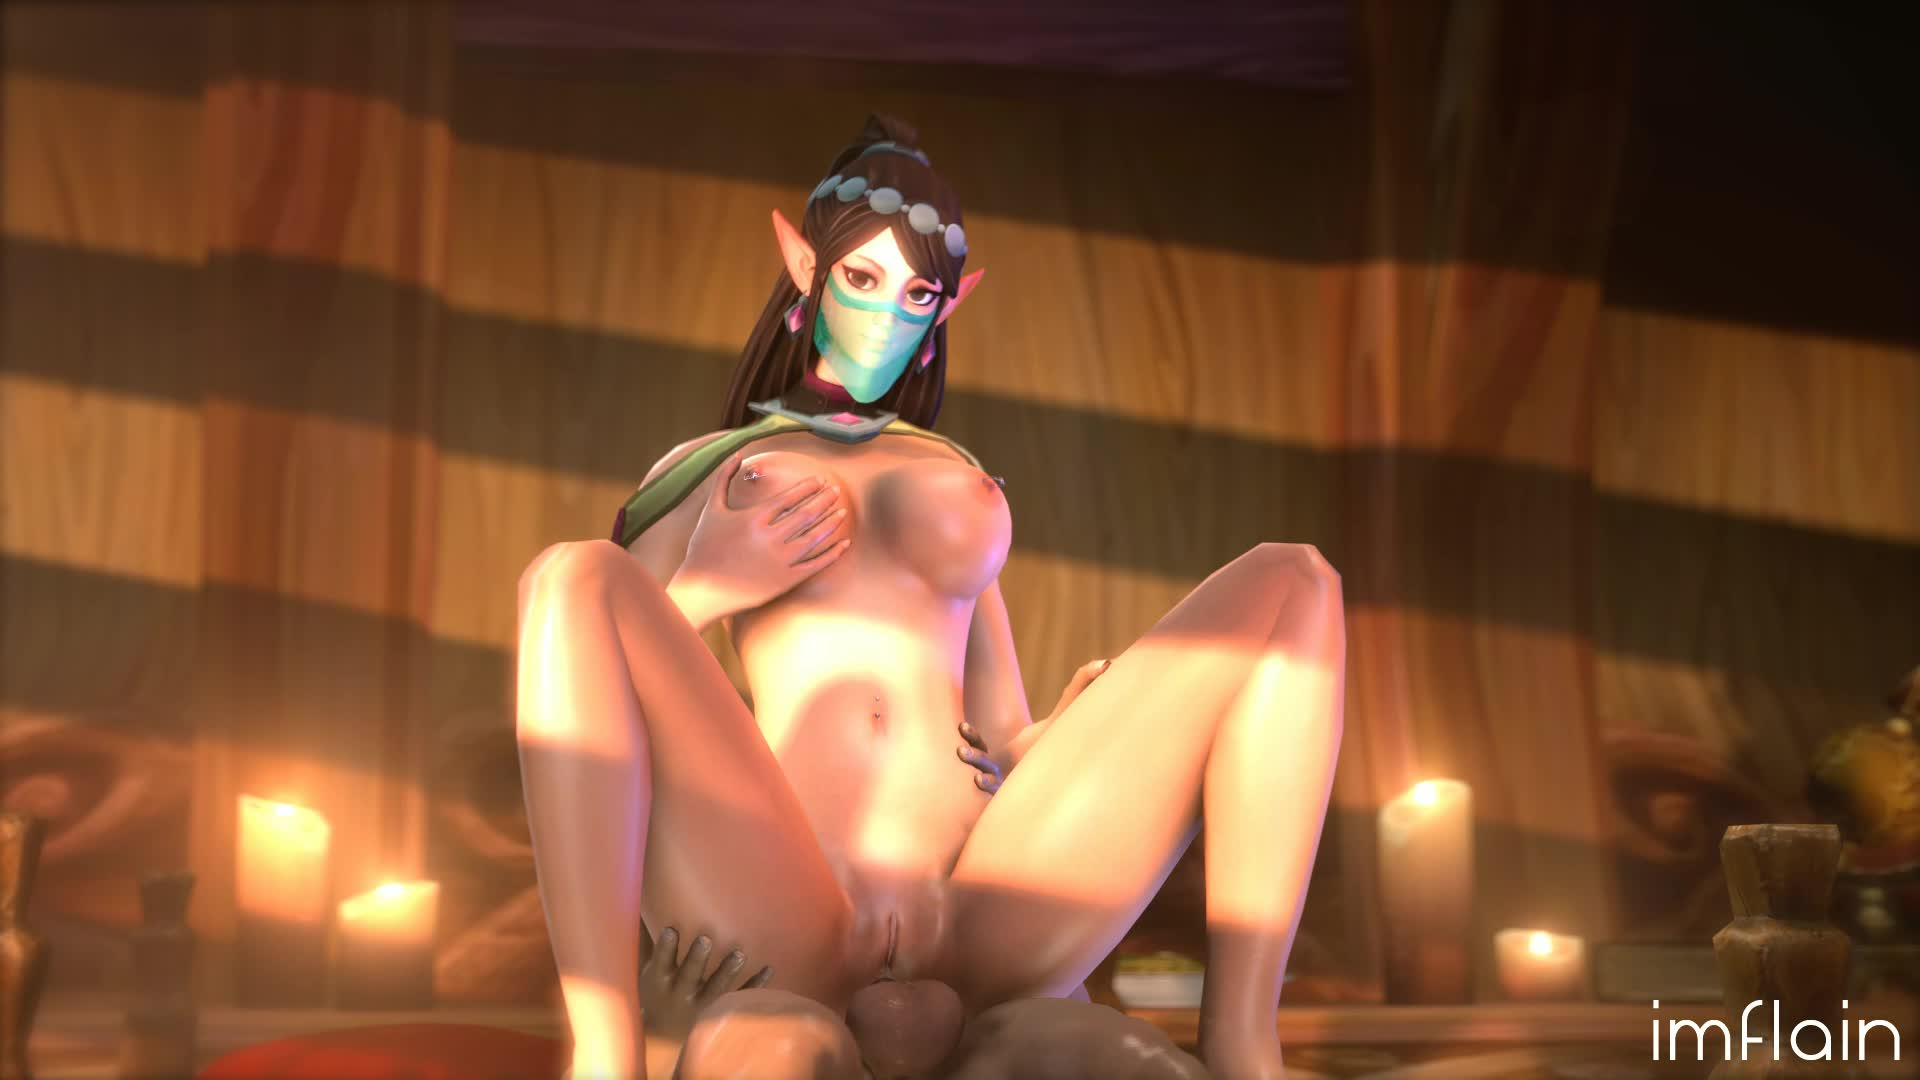 3D Animated Imflain Paladins Sound Source_Filmmaker ying // 1920x1080 // 13.8MB // webm